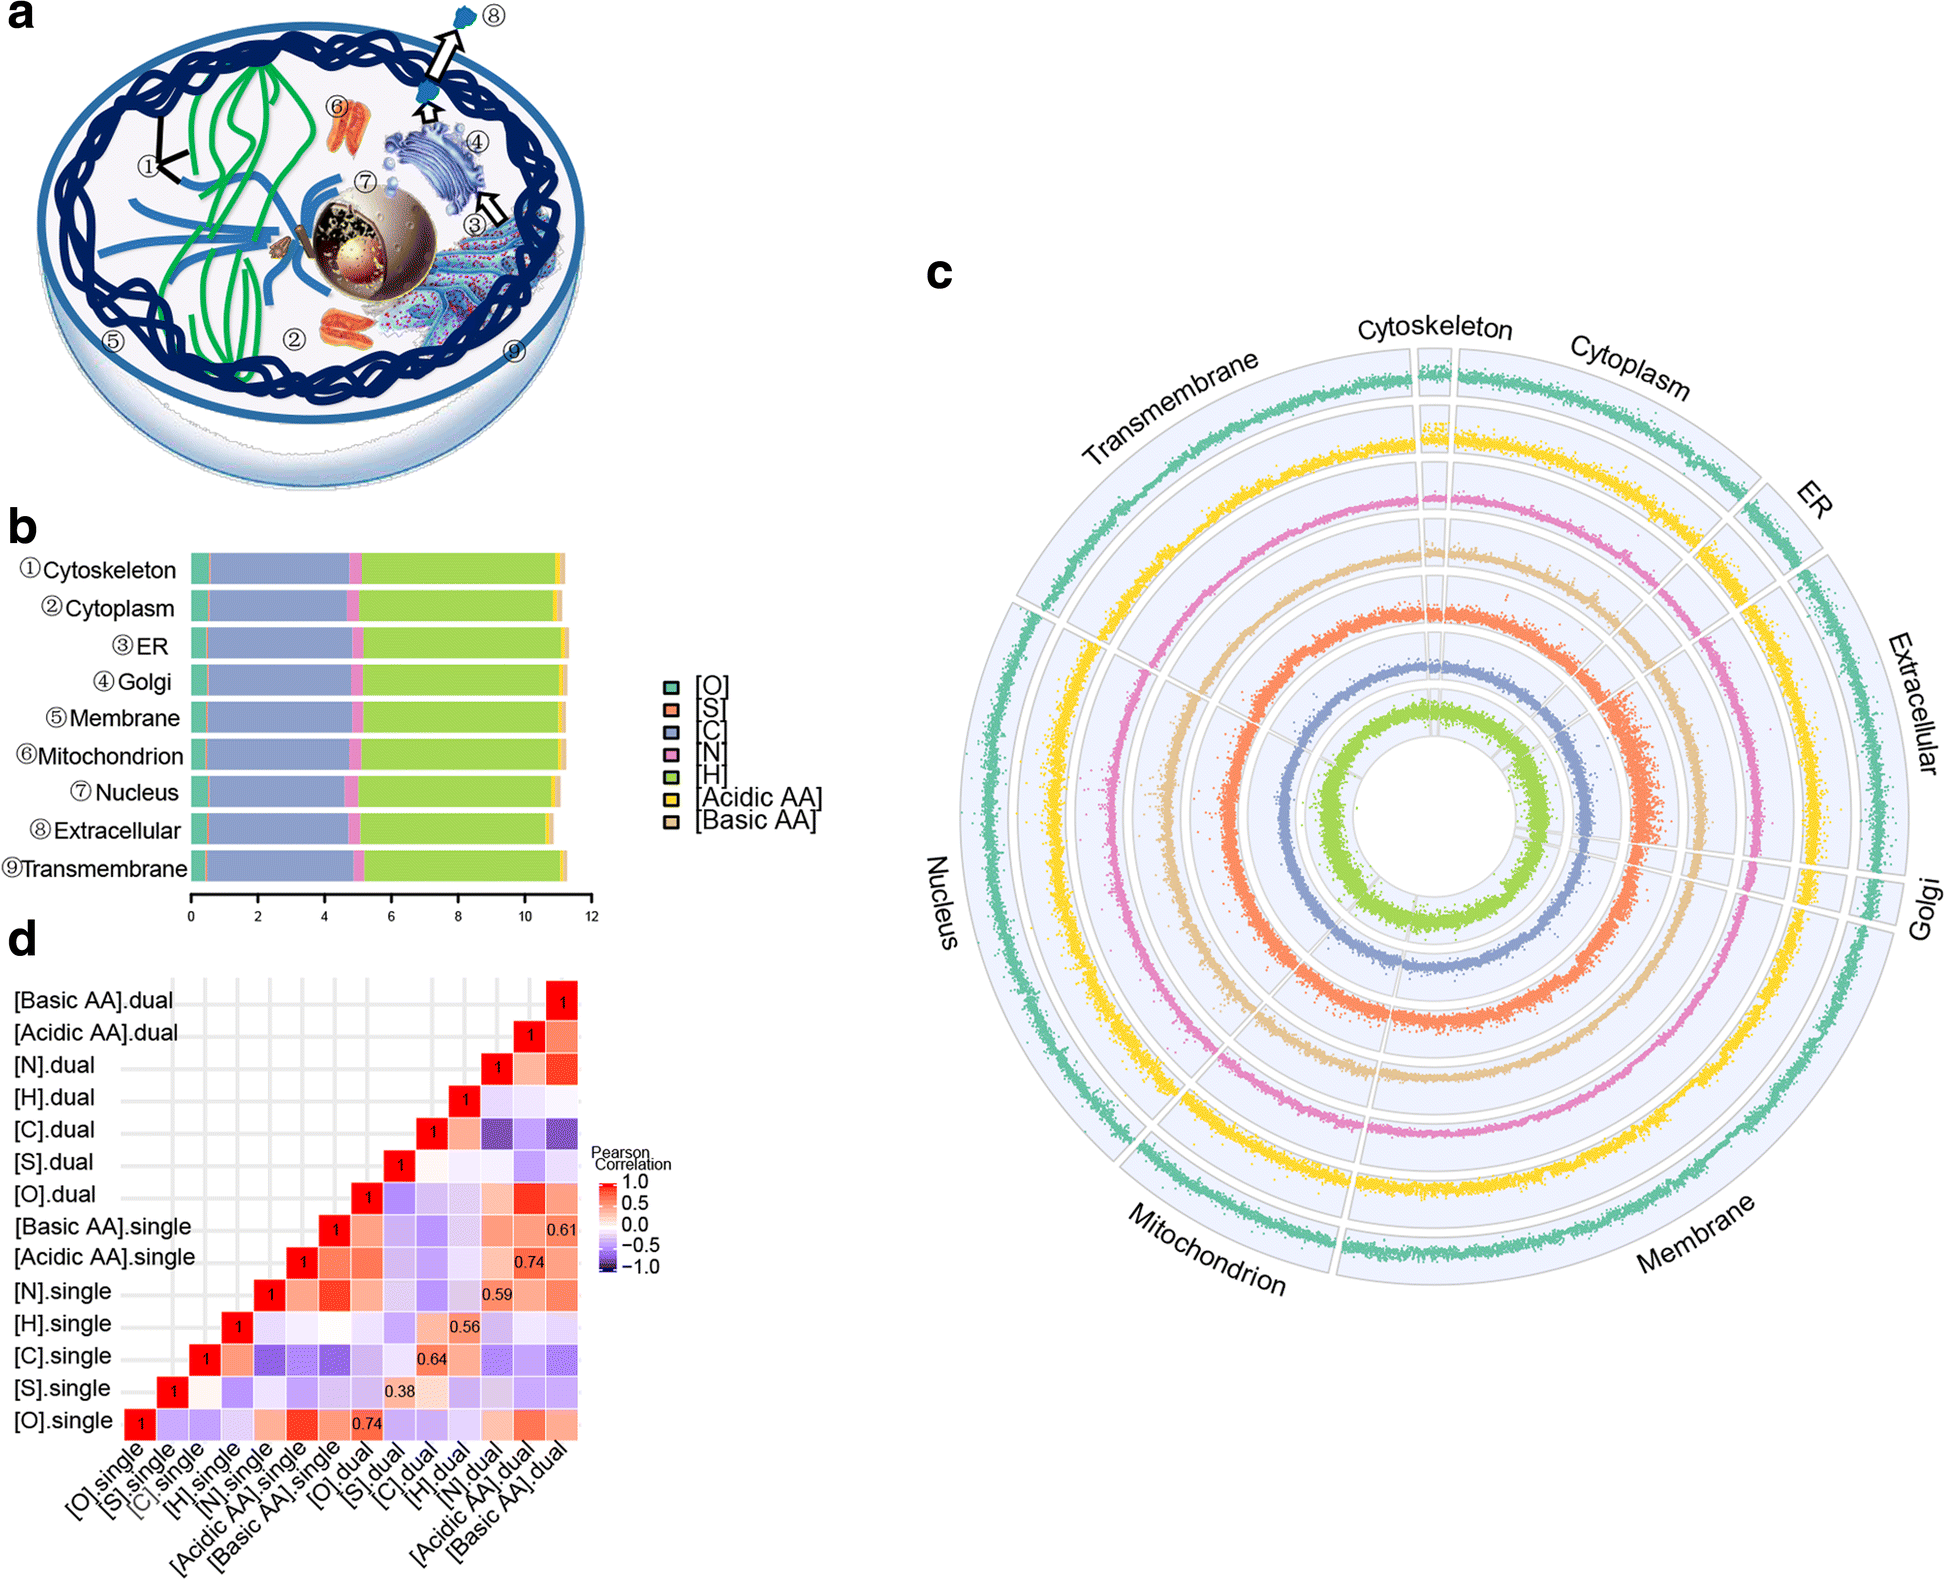 Subcellular Stoichiogenomics Reveal Cell Evolution And Electrostatic Eukaryotic Cells Are Generally Much Larger Than Prokaryotic Fig 1